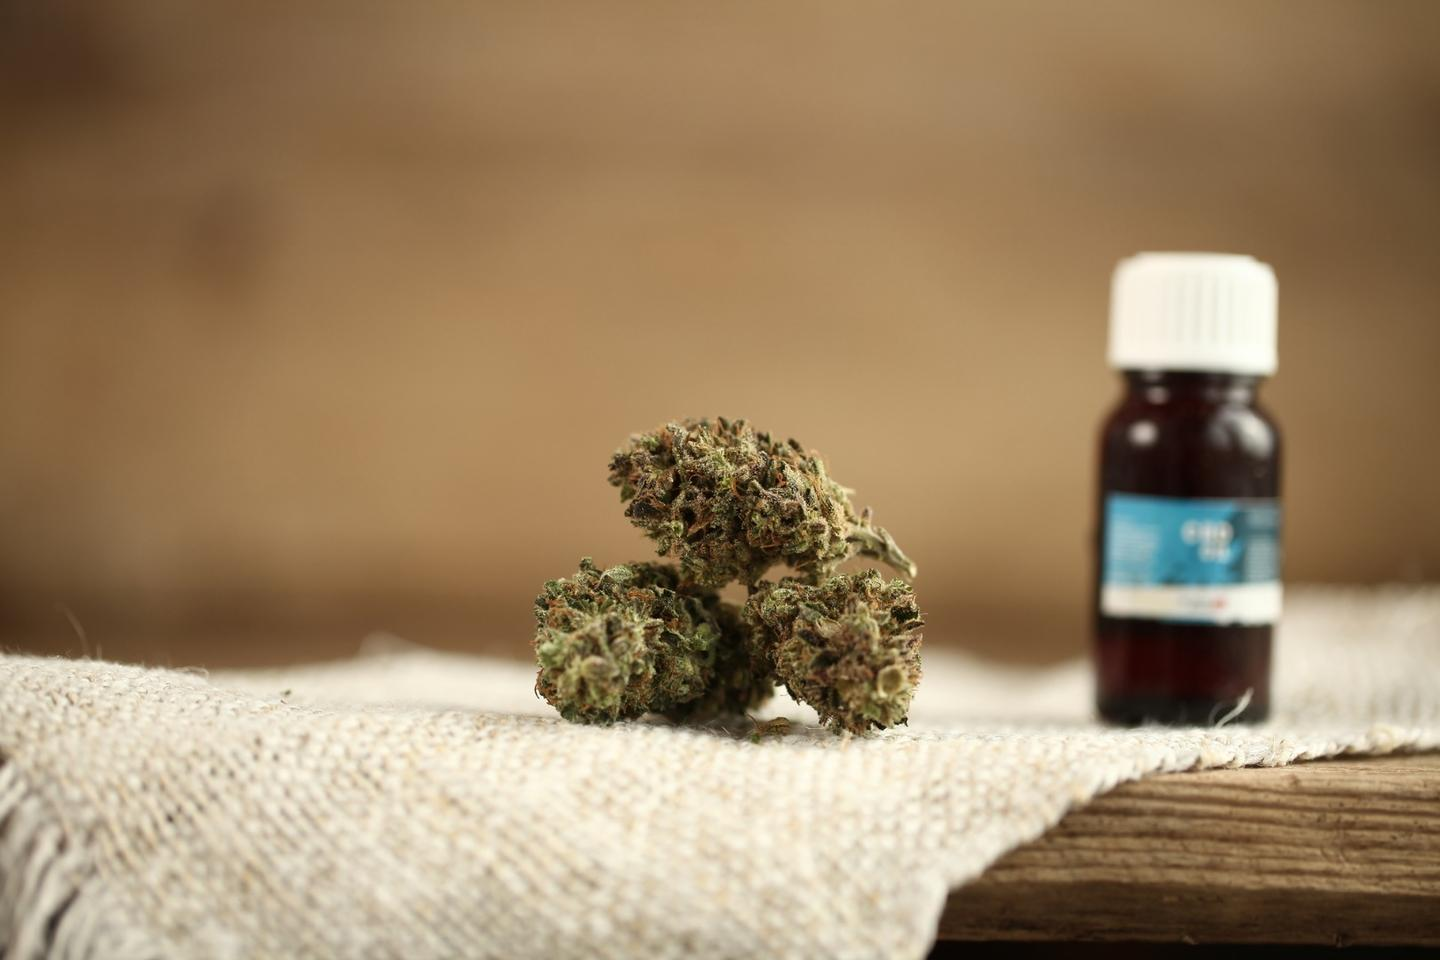 The FDA is trying to speed up its work to institute regulatory policies surrounding the rapidly growing CBD market while several companies sell products with unproven medical claims